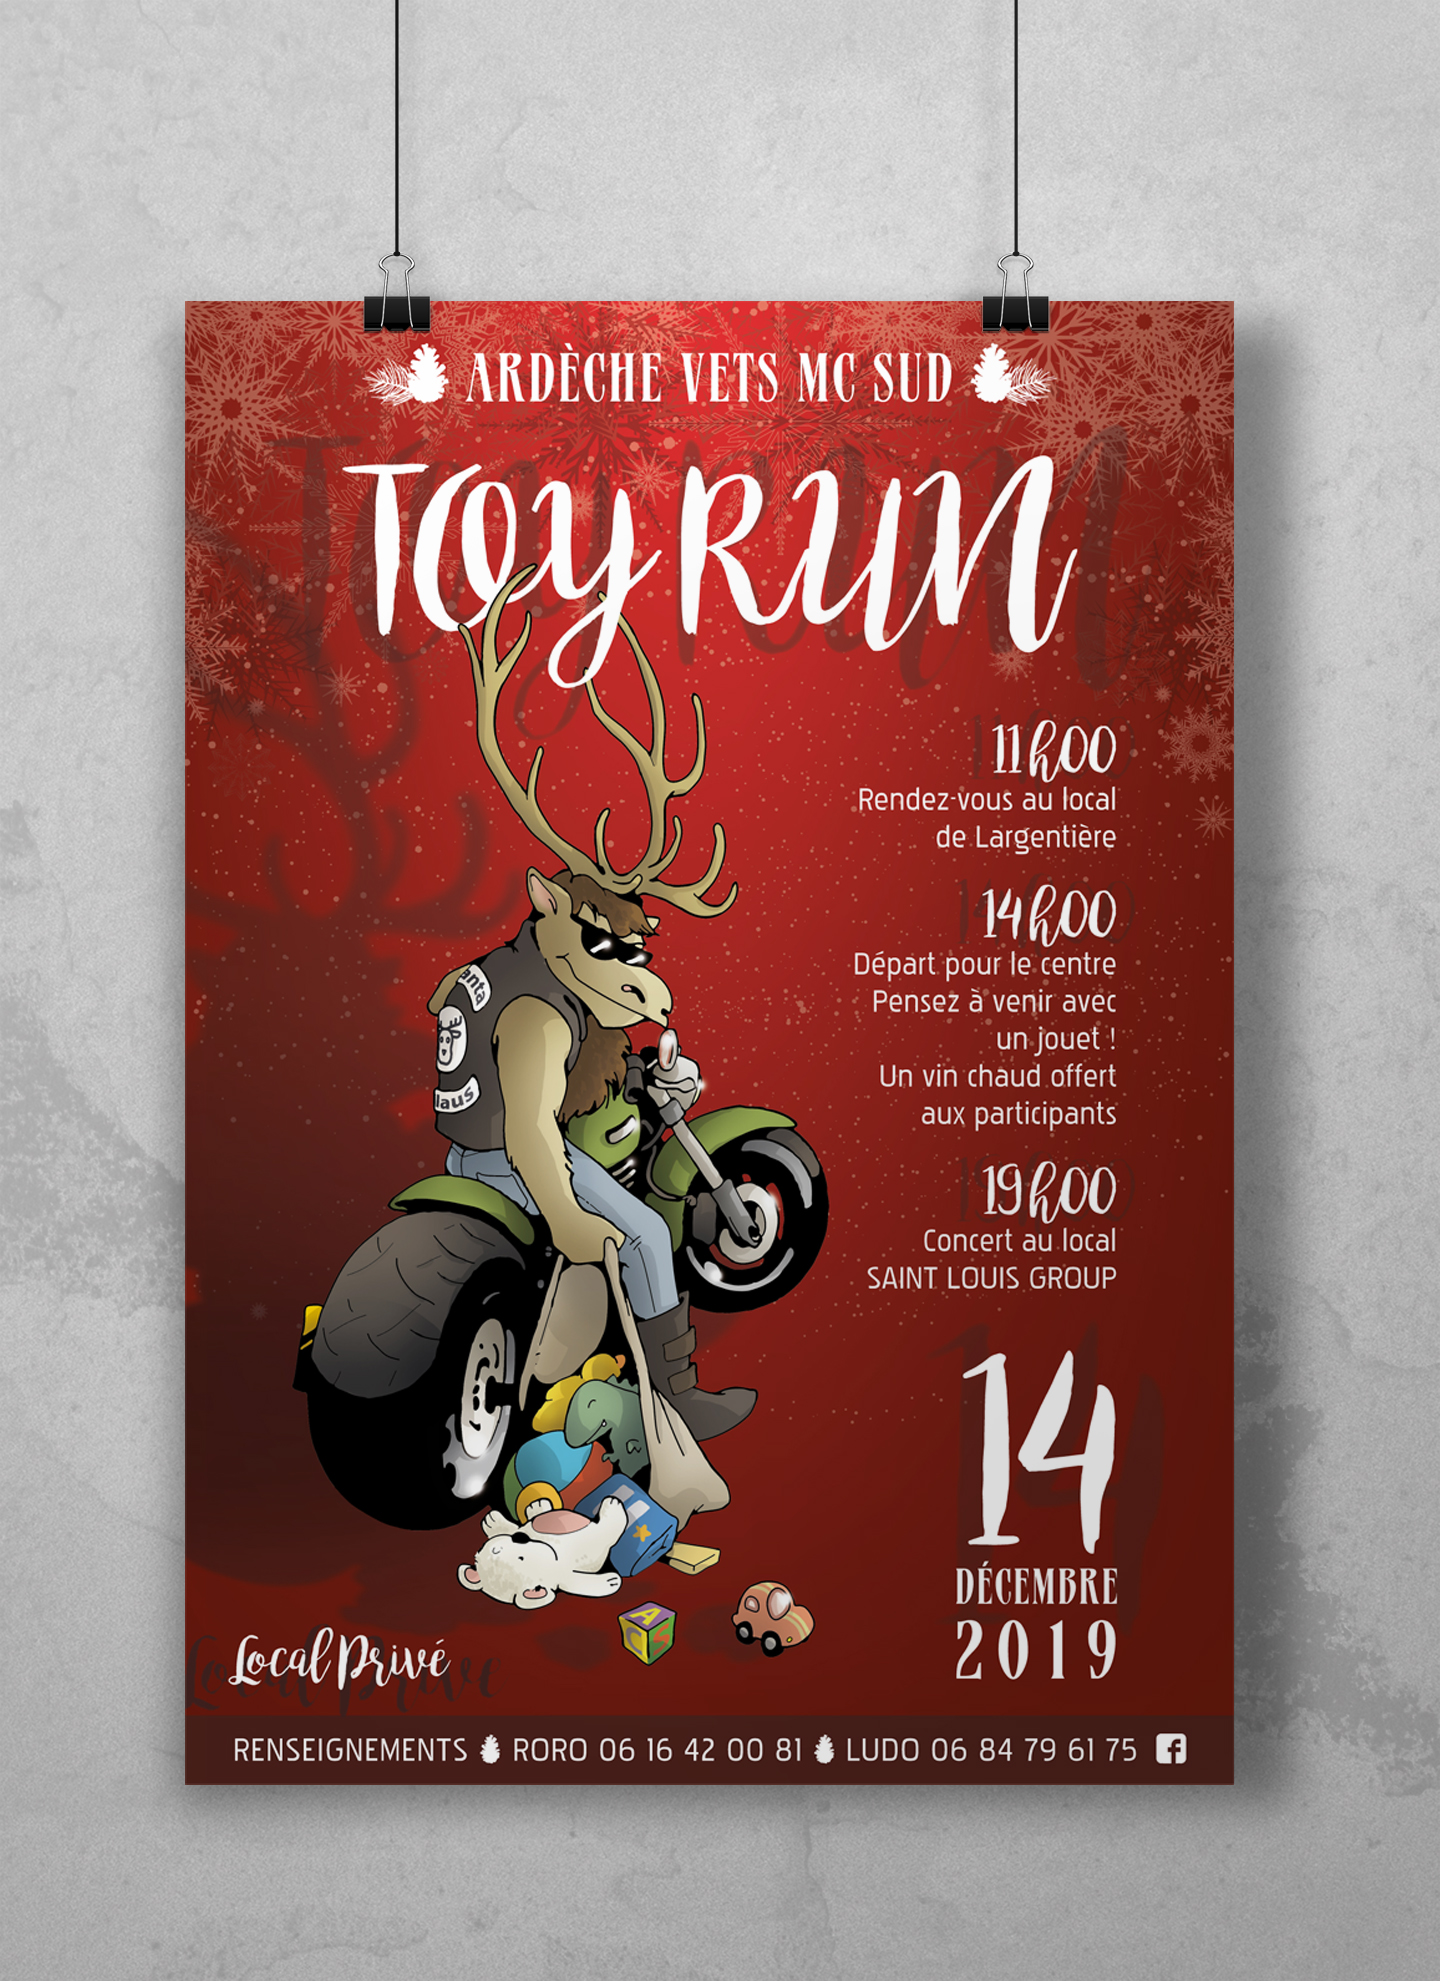 TOY RUN Ardéche Vets 2019